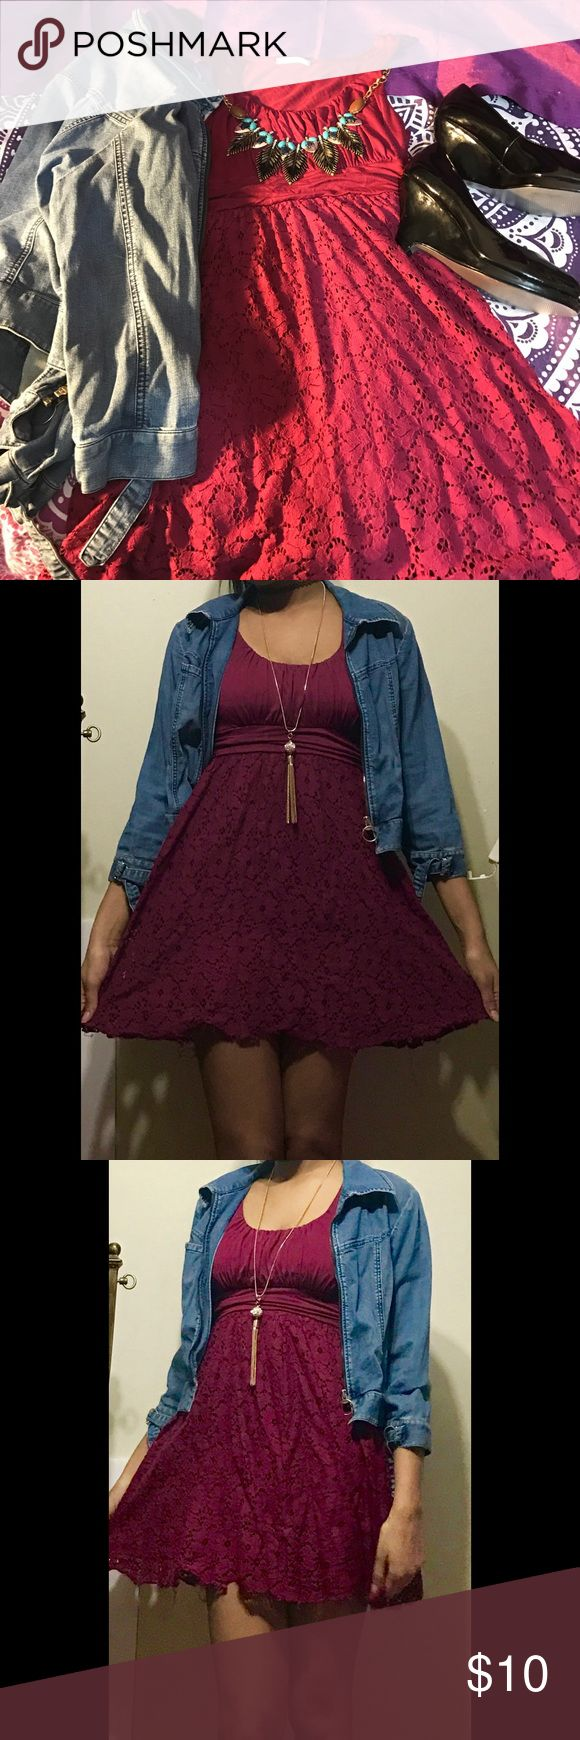 Maroon Skater Dress W/ Lace Look This maroon colored dress is a beautiful transition piece for winter to spring! This dress has flower detailing and is in great condition! I am flexible with price so don't be afraid to make an offer! I ship fast! Free gift with every purchase from my closet! Dresses